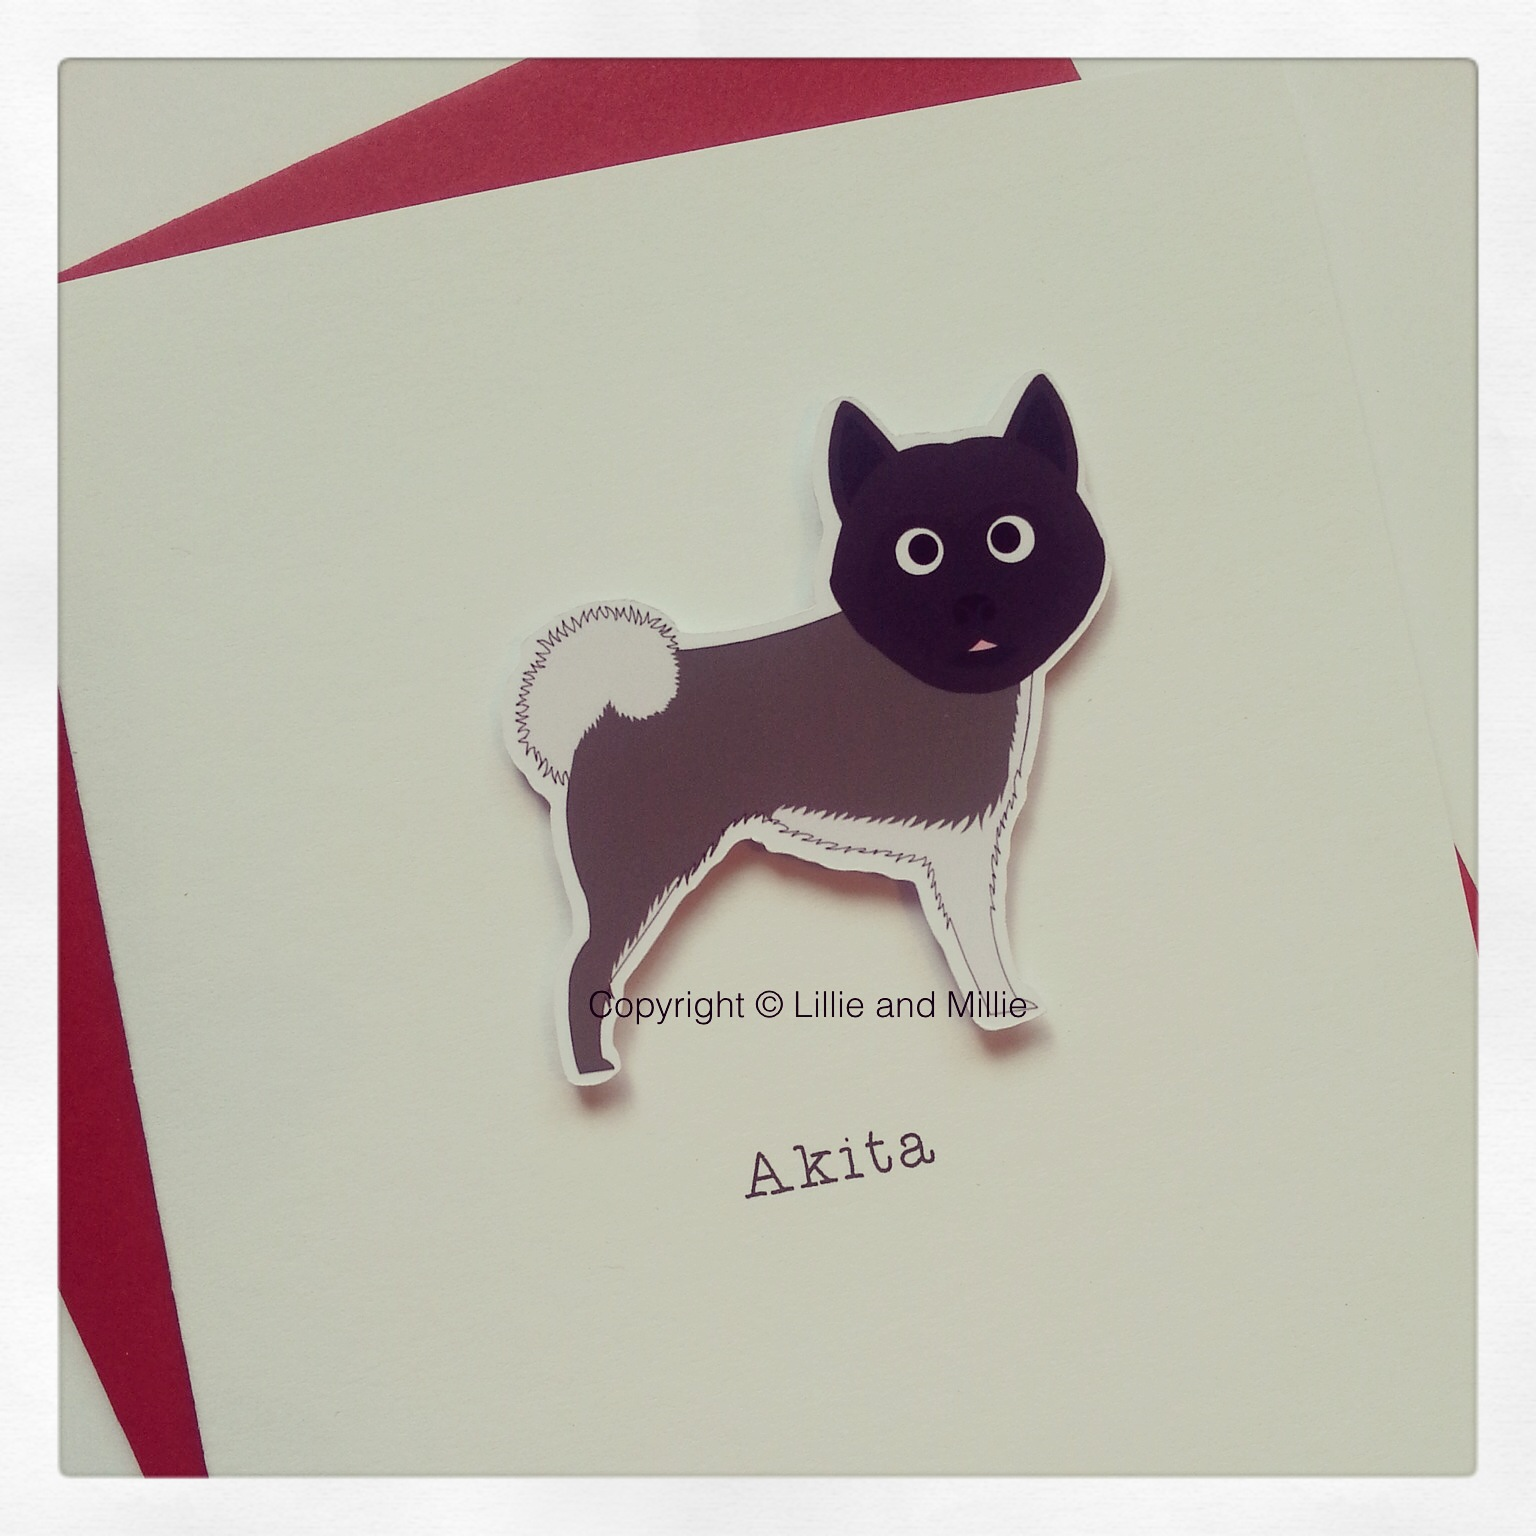 Akita Dog Greetings Card